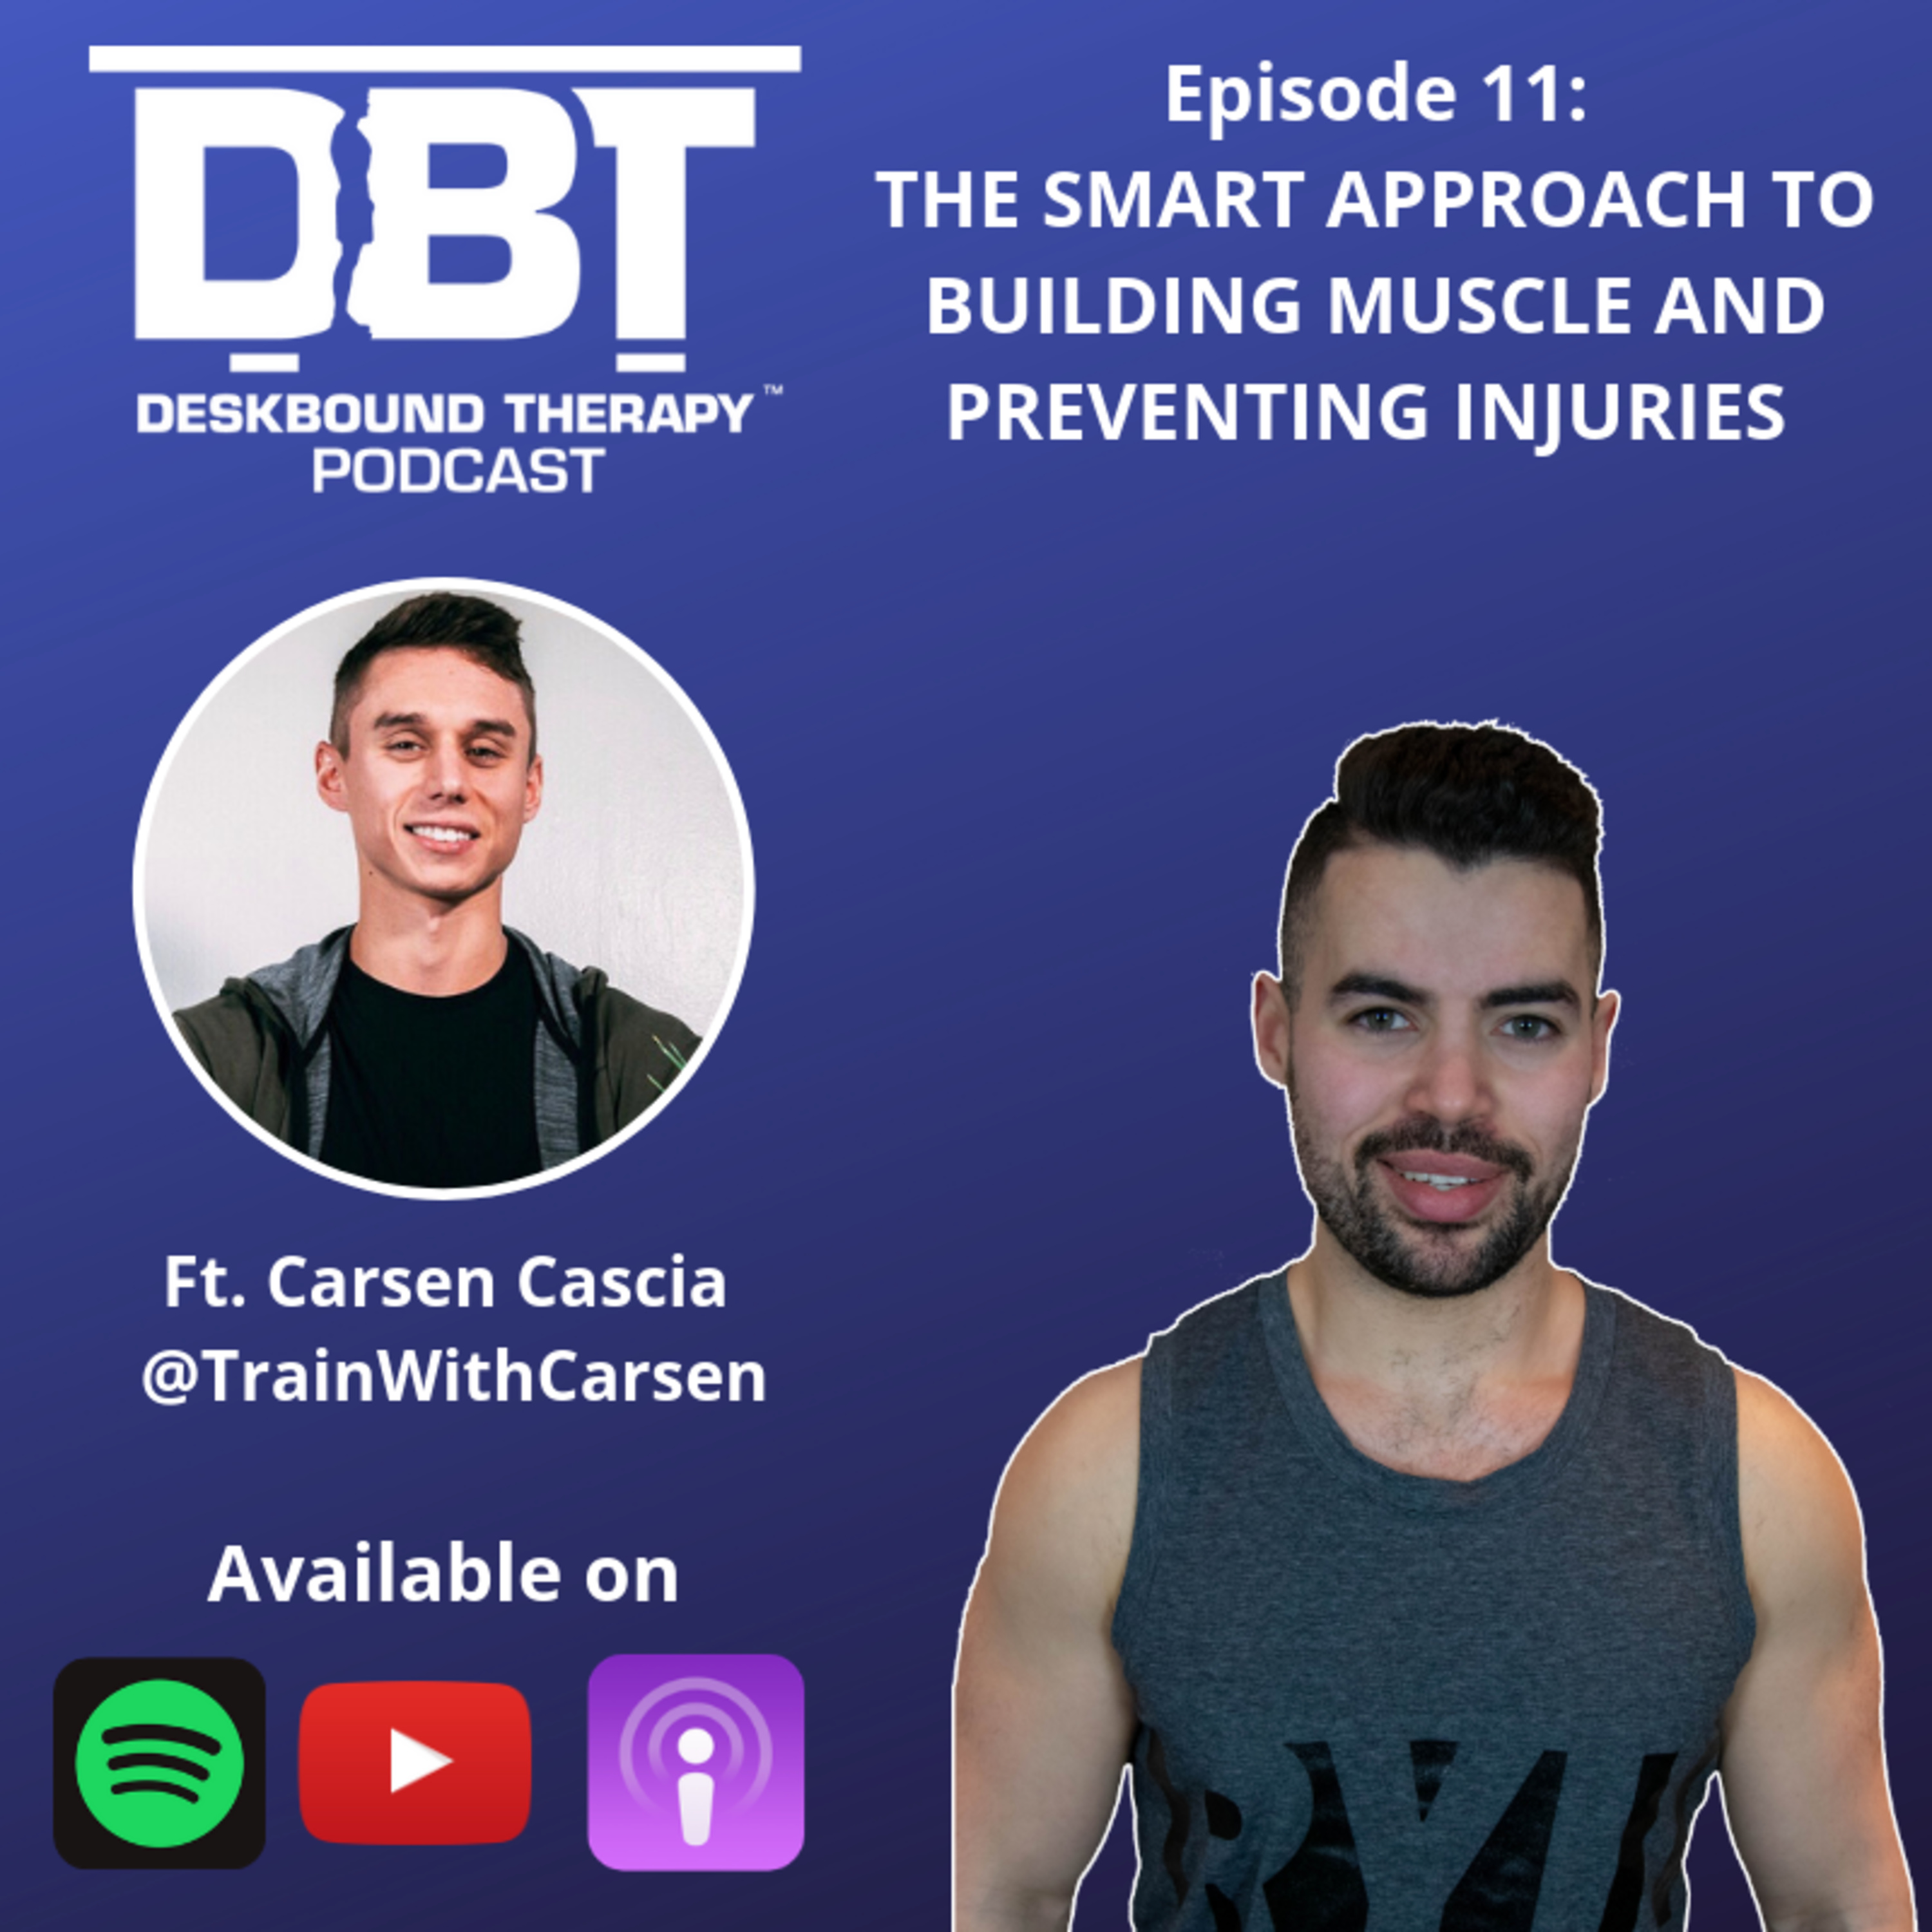 Episode 11: The Smart Approach To Building Muscle Ft. Carsen Cascia